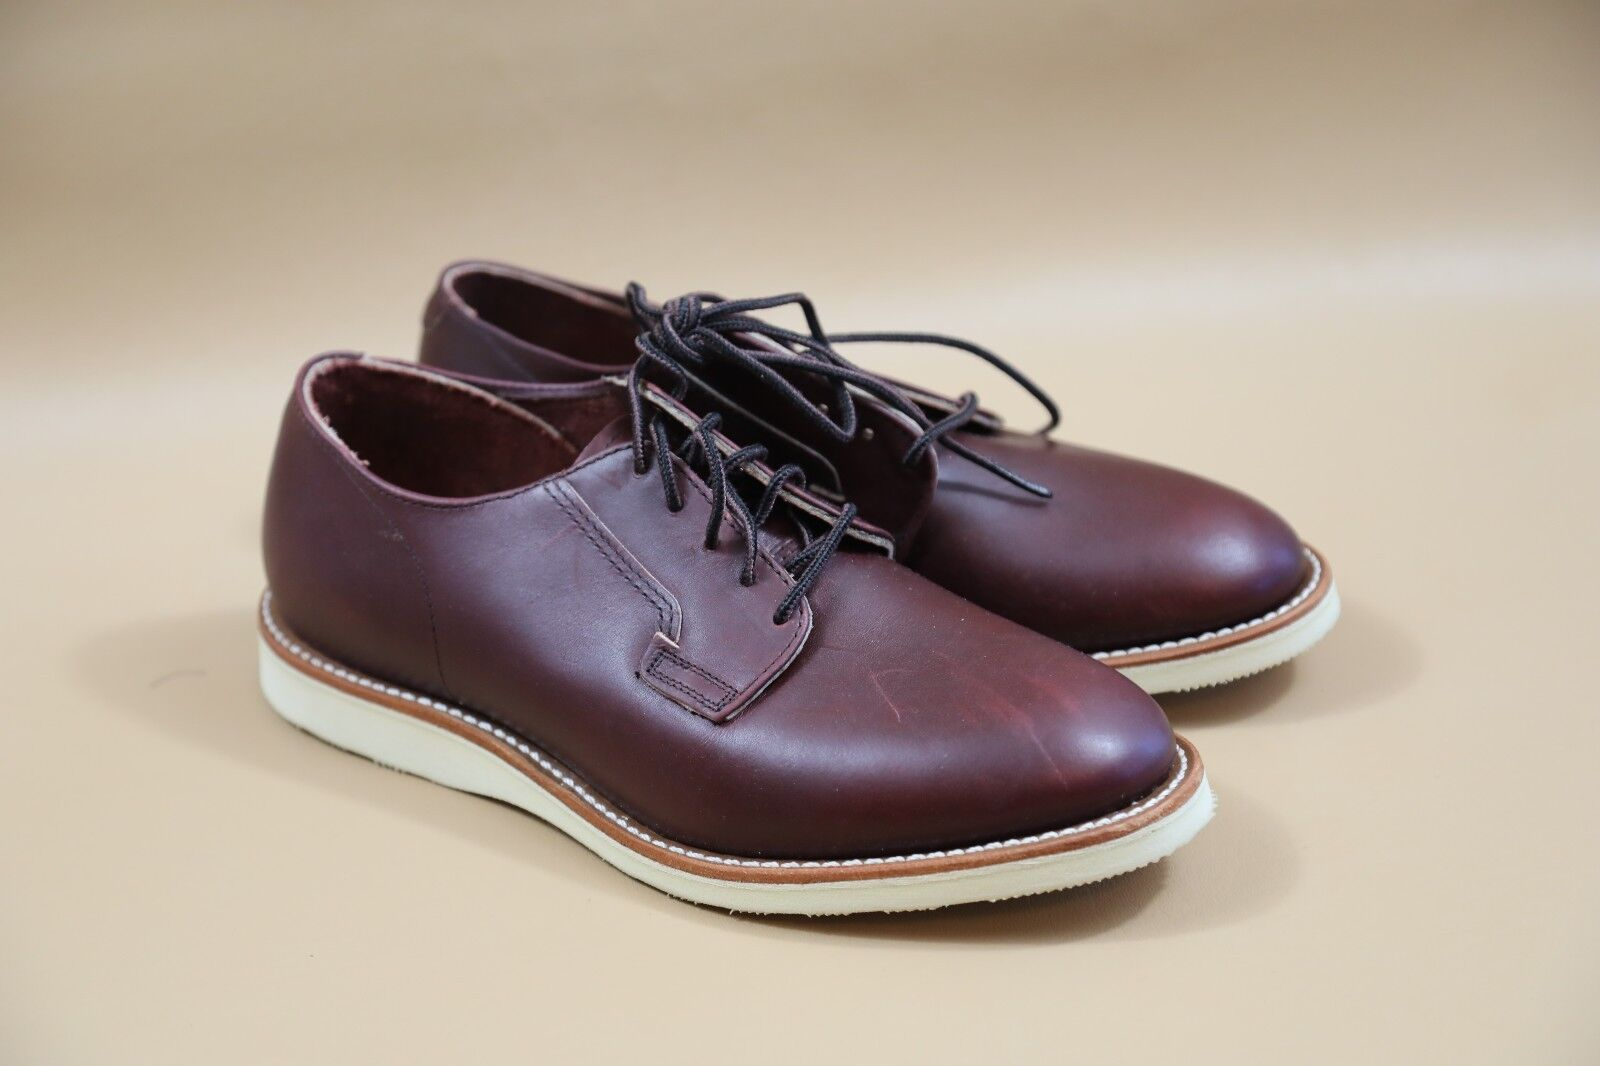 Red Wing 3117 Postman Oxfords Size 8 D